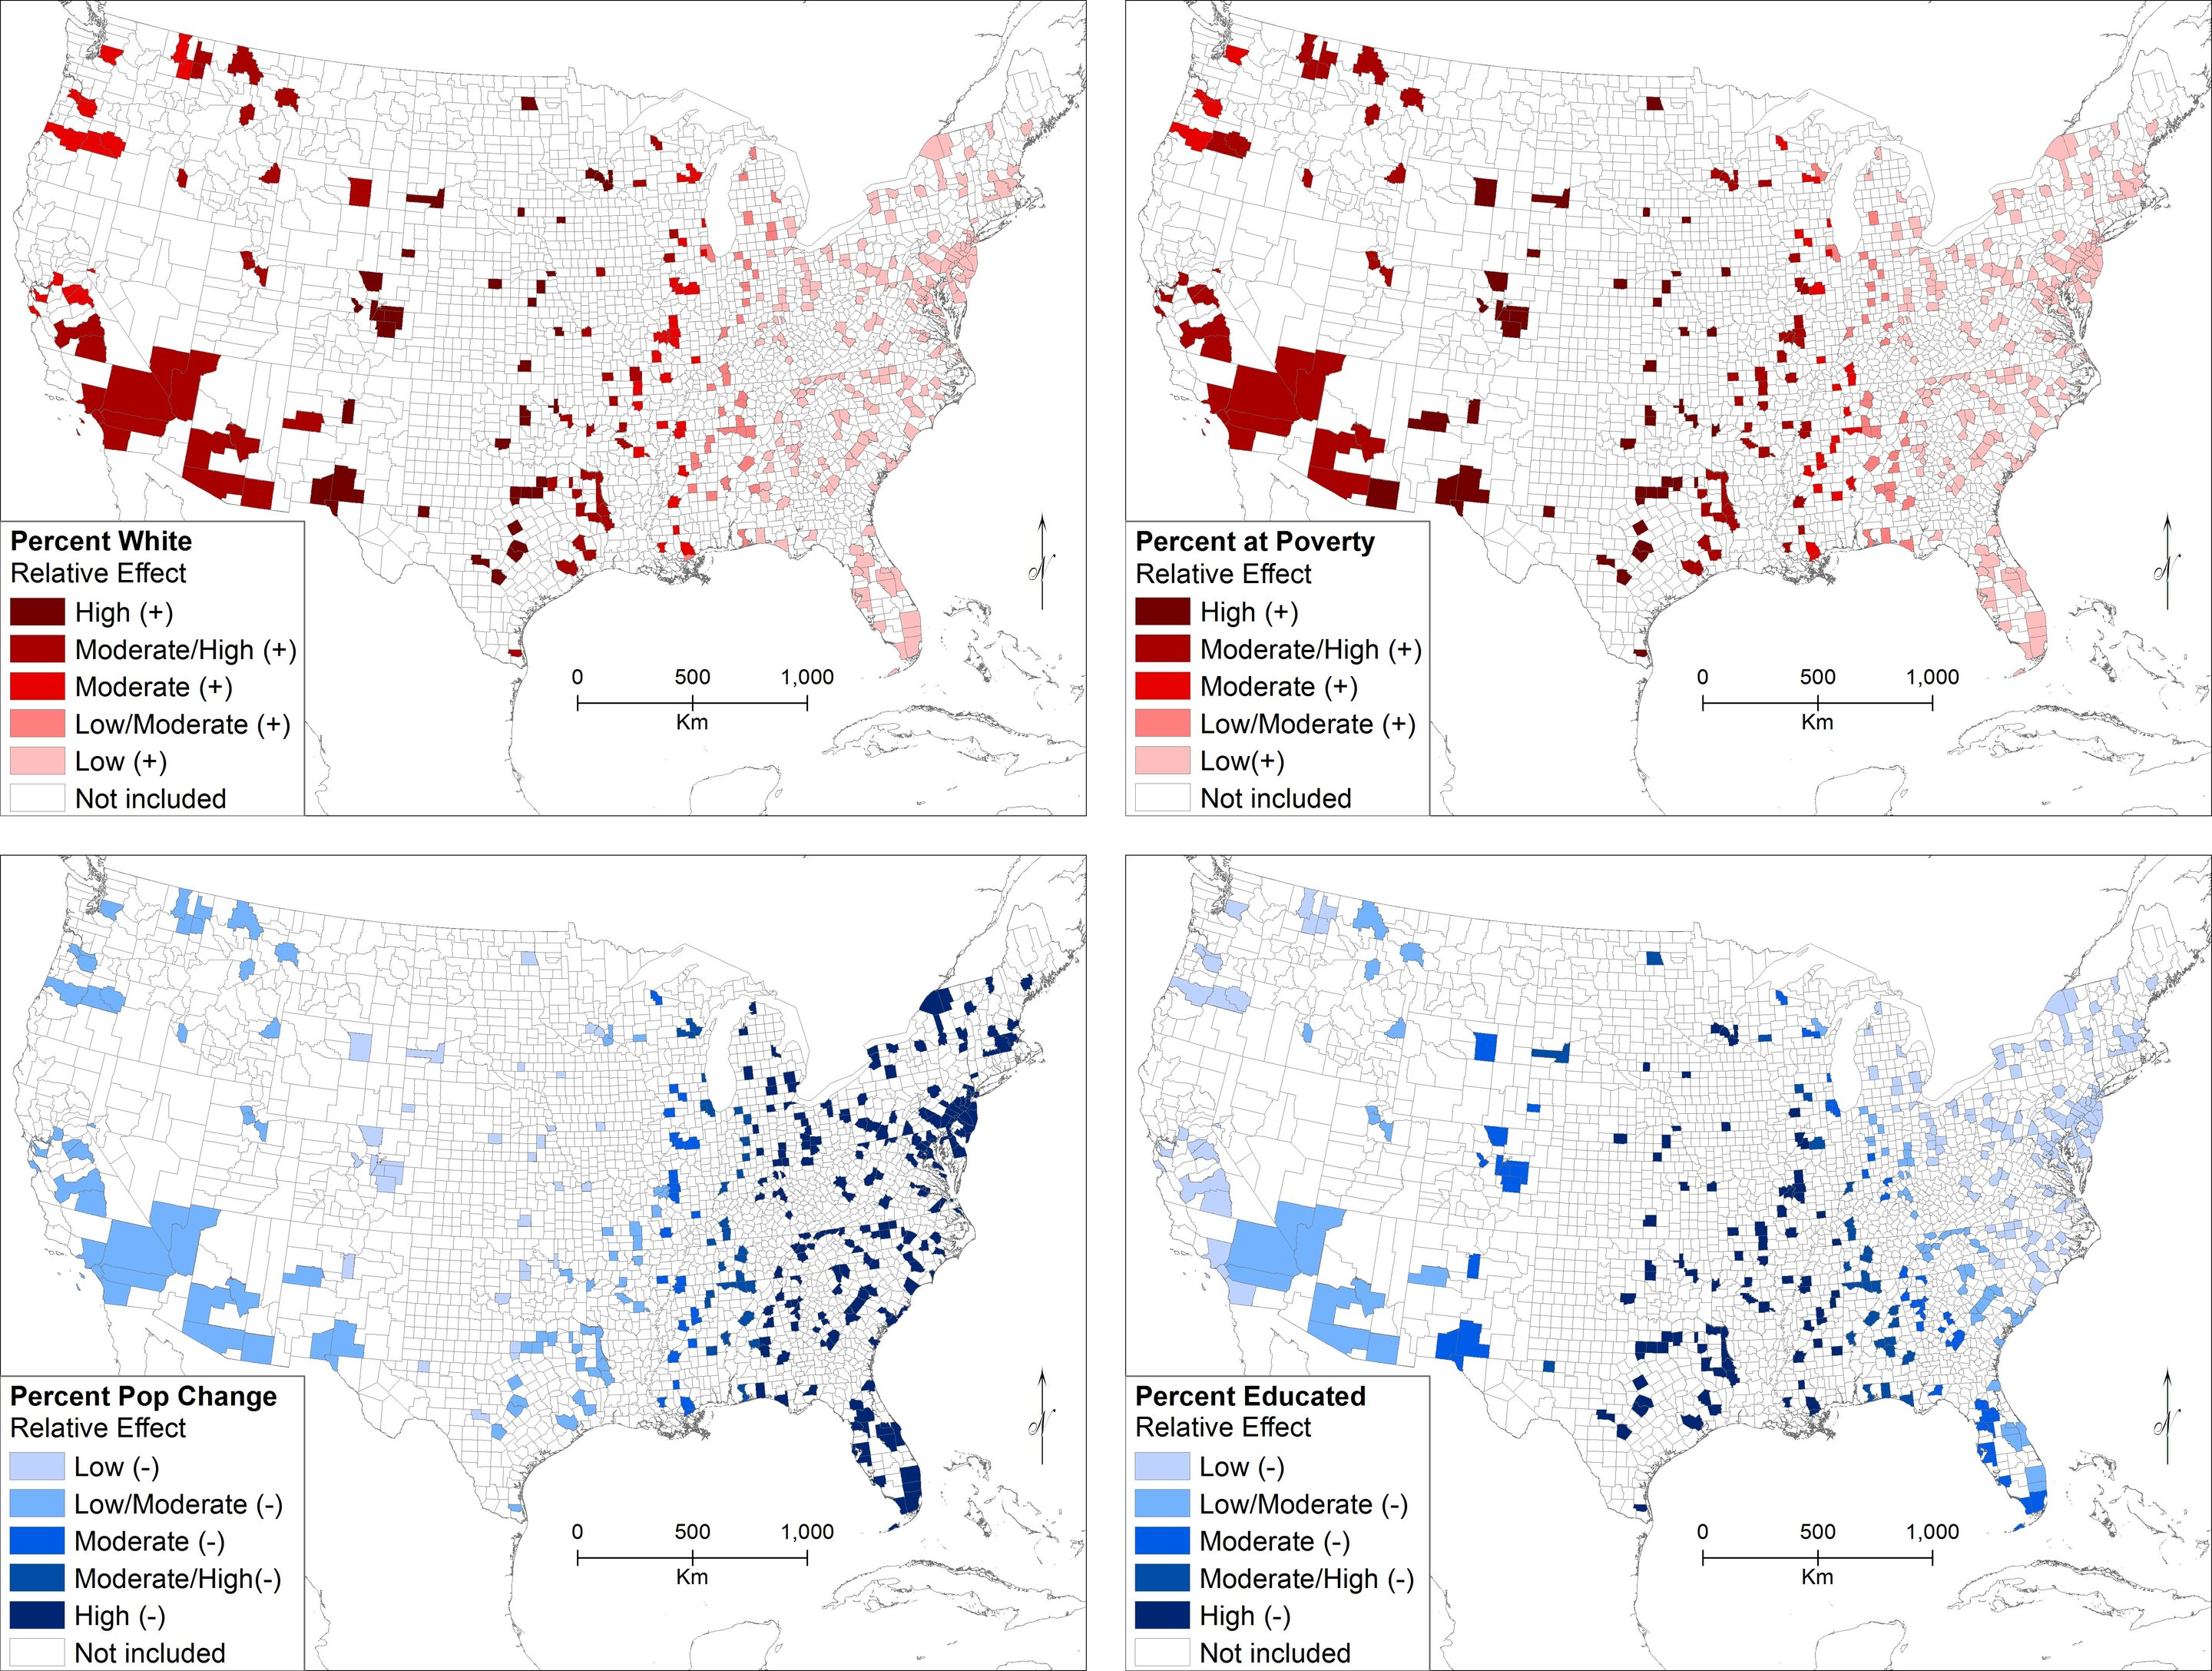 Drivers of hate in the U.S. have distinct regional differences